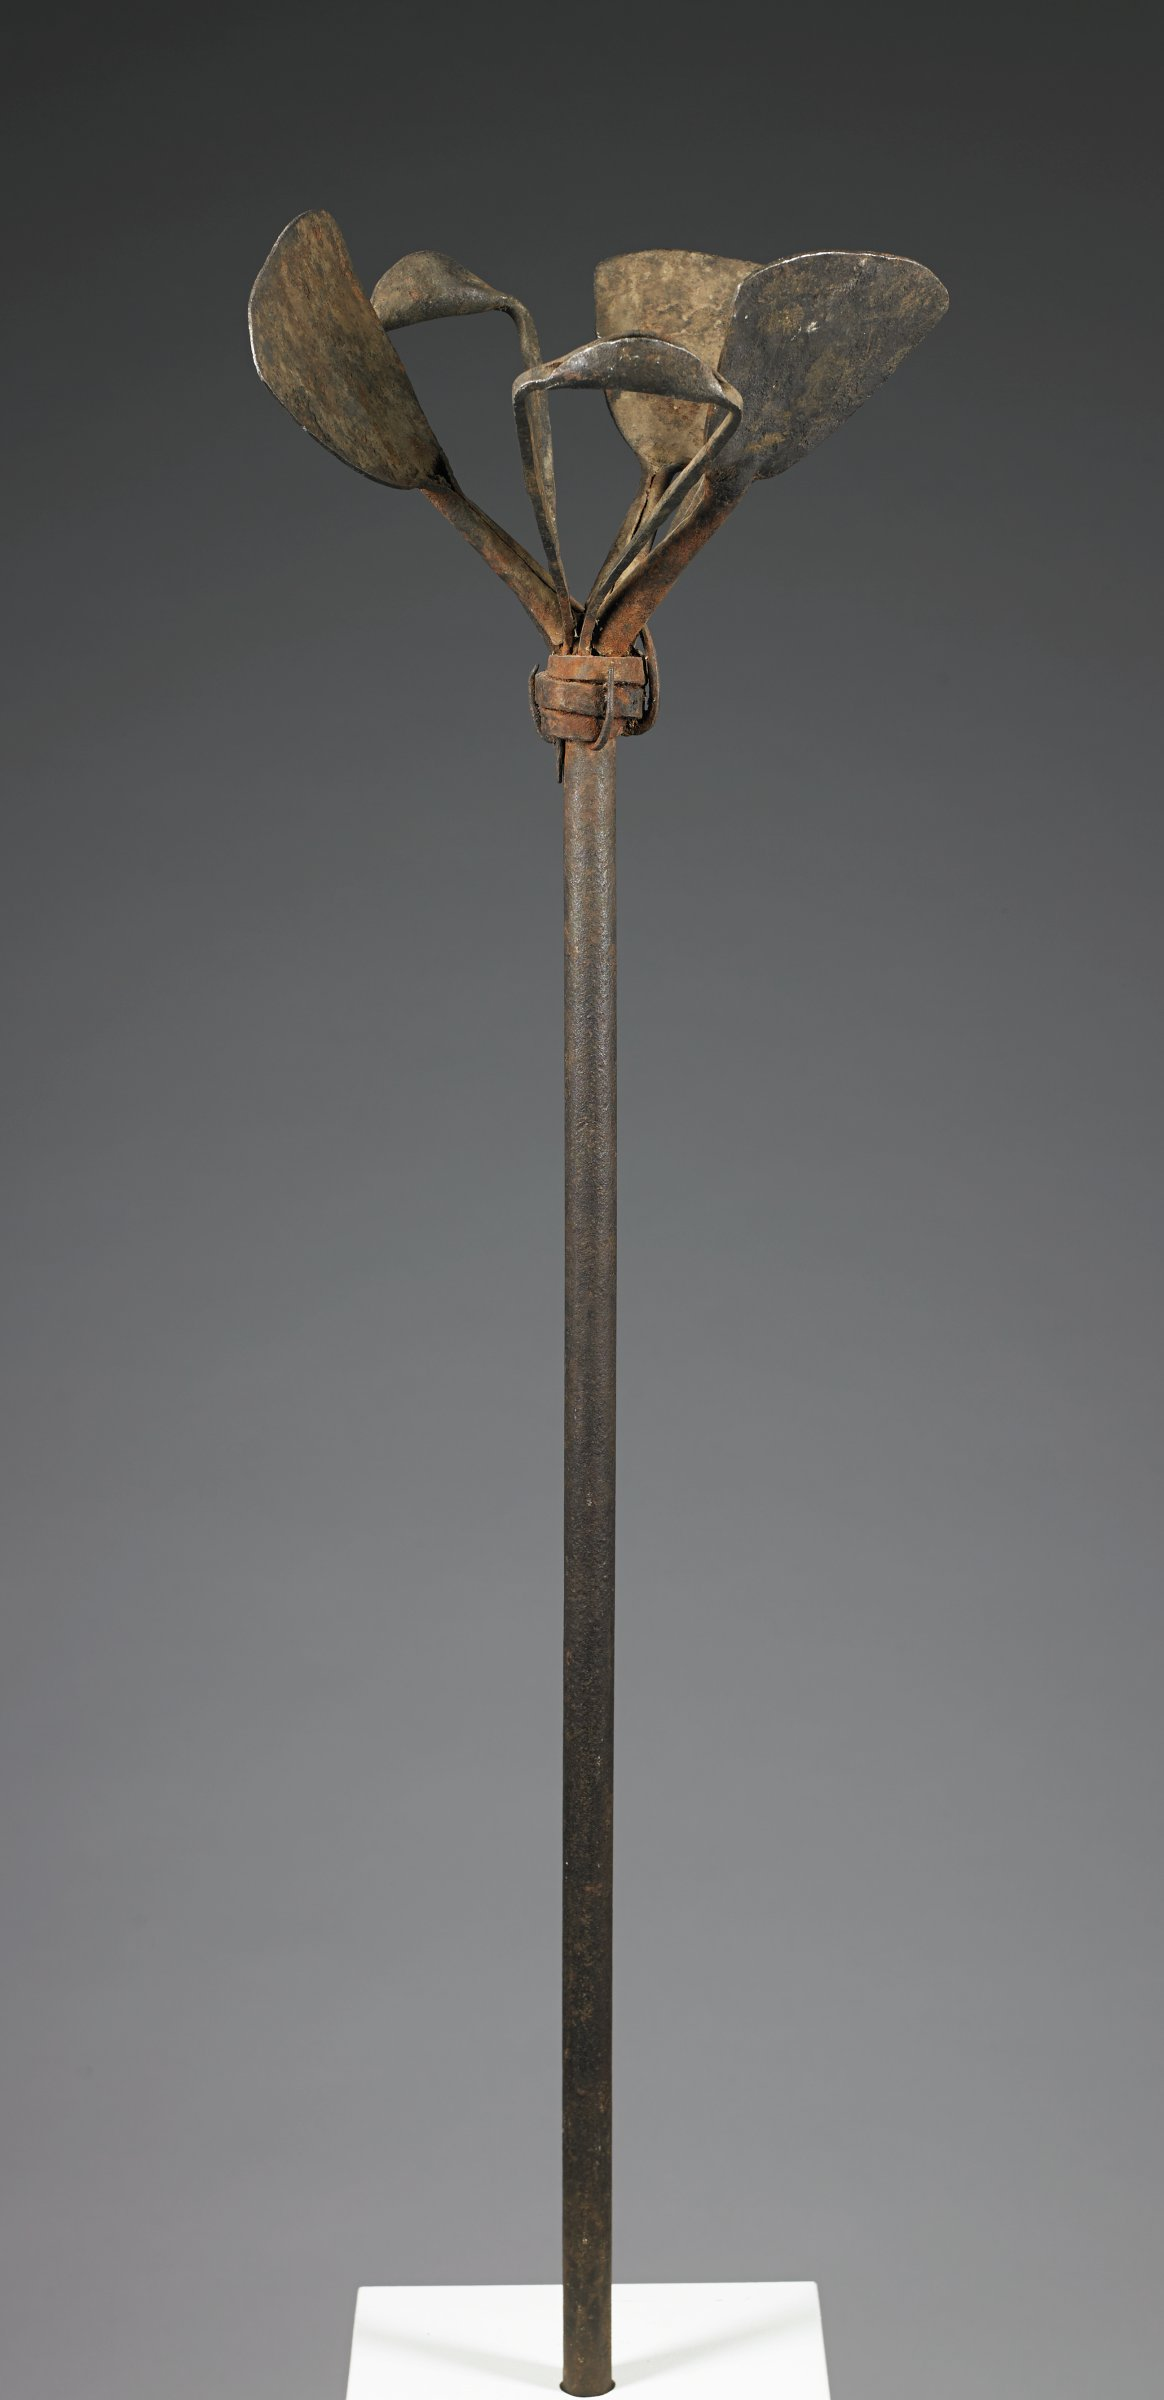 Vertical iron pole with six iron currency objects attached at top; three objects are iron hoe-blade currencies, and three are possibly rattles, hoe-shaped but open in center and with an enclosed portion that could have held percussive elementsFunction: Currency staffs constitute a display of wealth; if it is Fulani, it would have been owned by settled Fulani rather than nomadic herders.